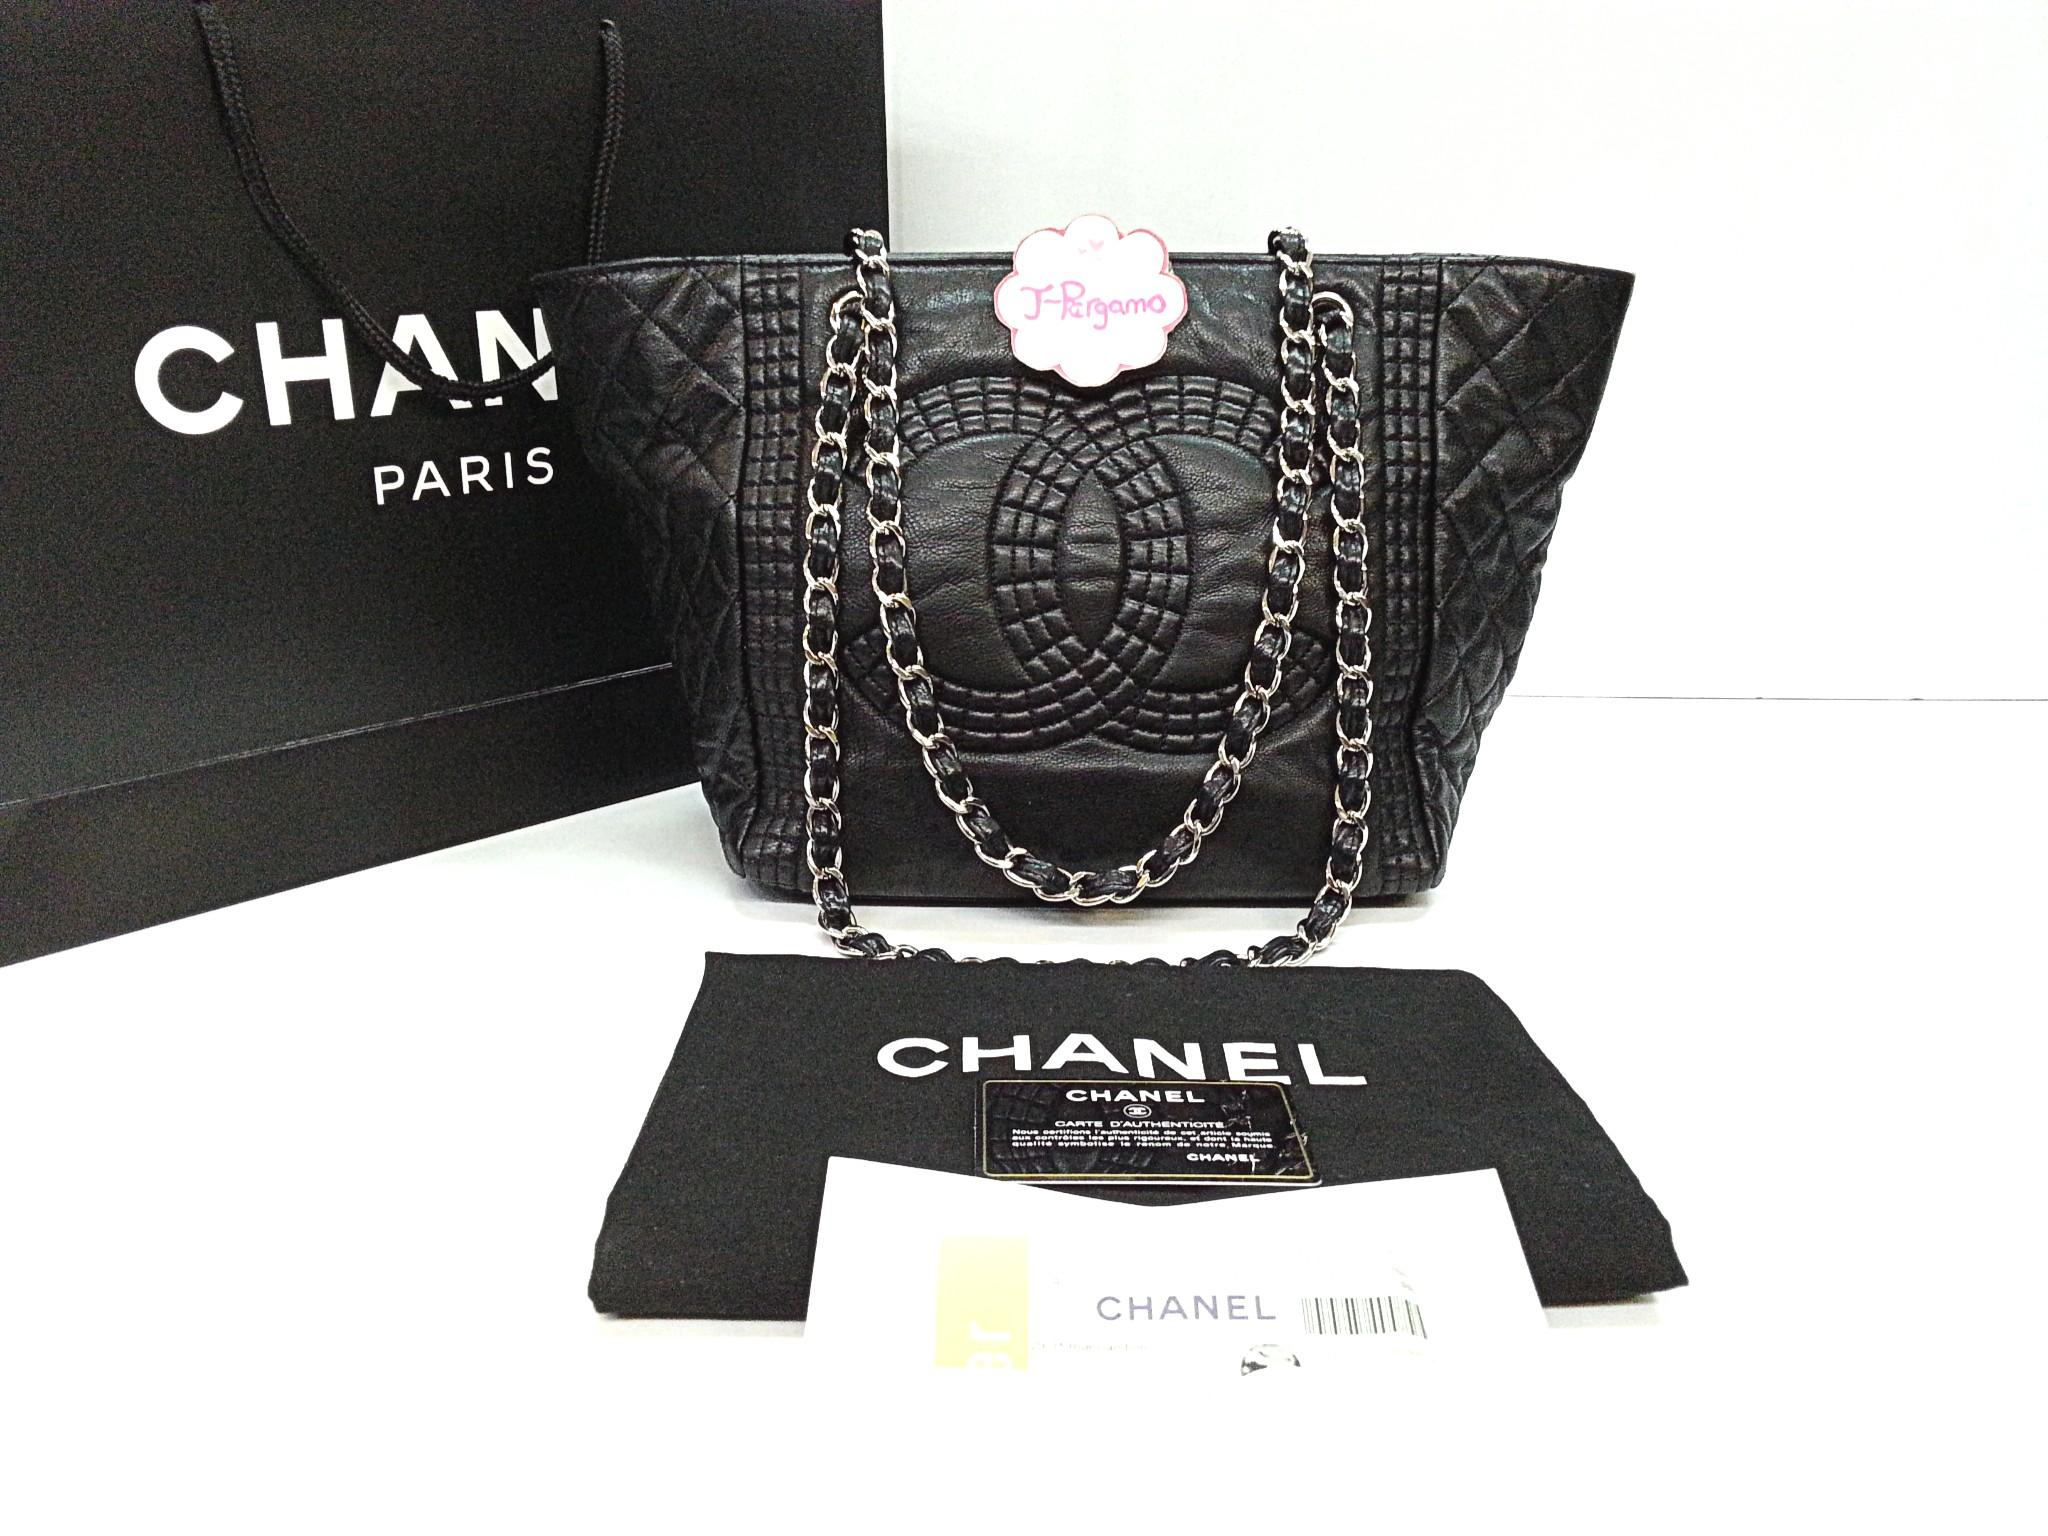 Authentic Chanel Grand Shopping Tote Bag {{Only For Sale}} **No Trade** {{Fixed Price Non-Neg}} **定价**